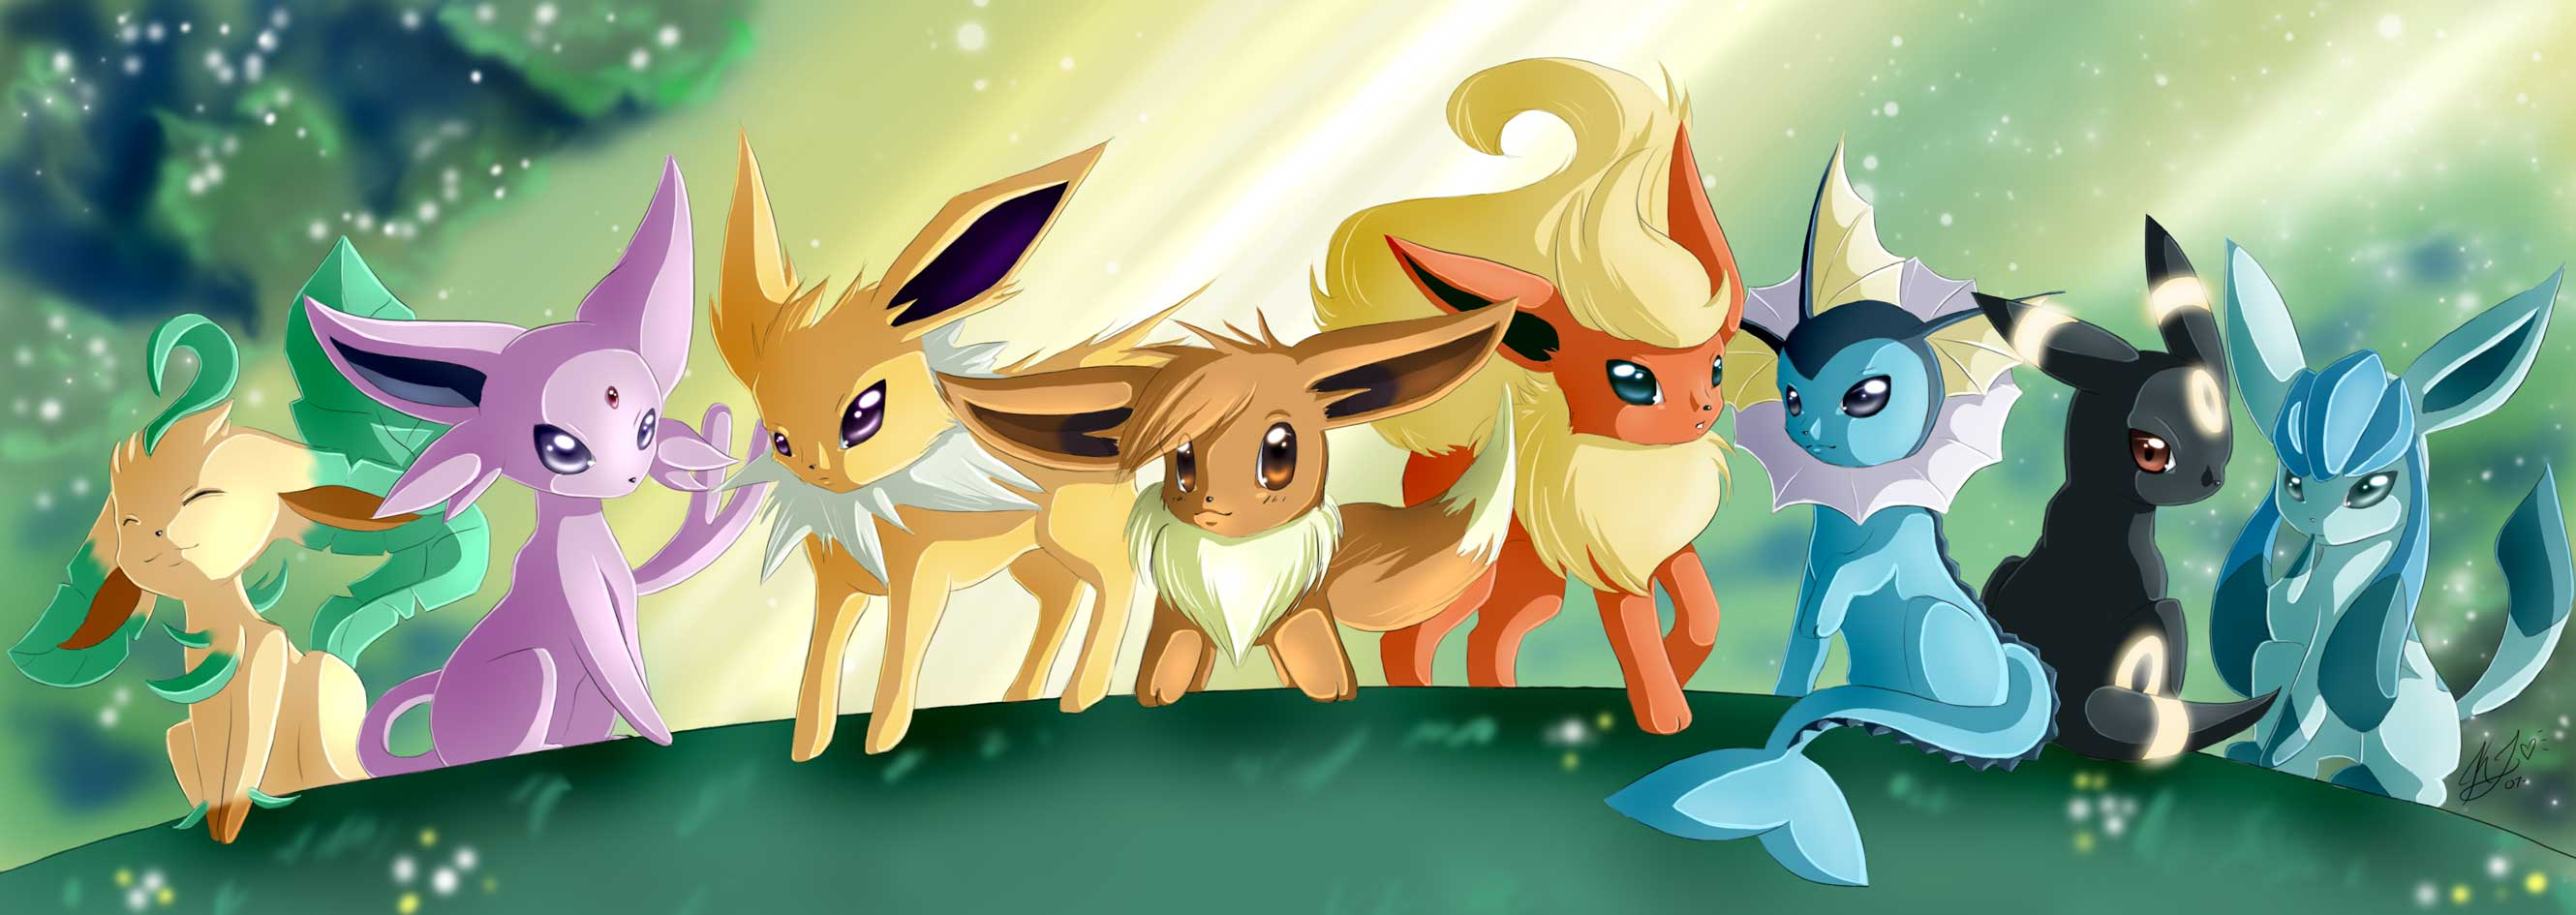 Wallpapers For > Cute Eevee Evolutions Wallpapers